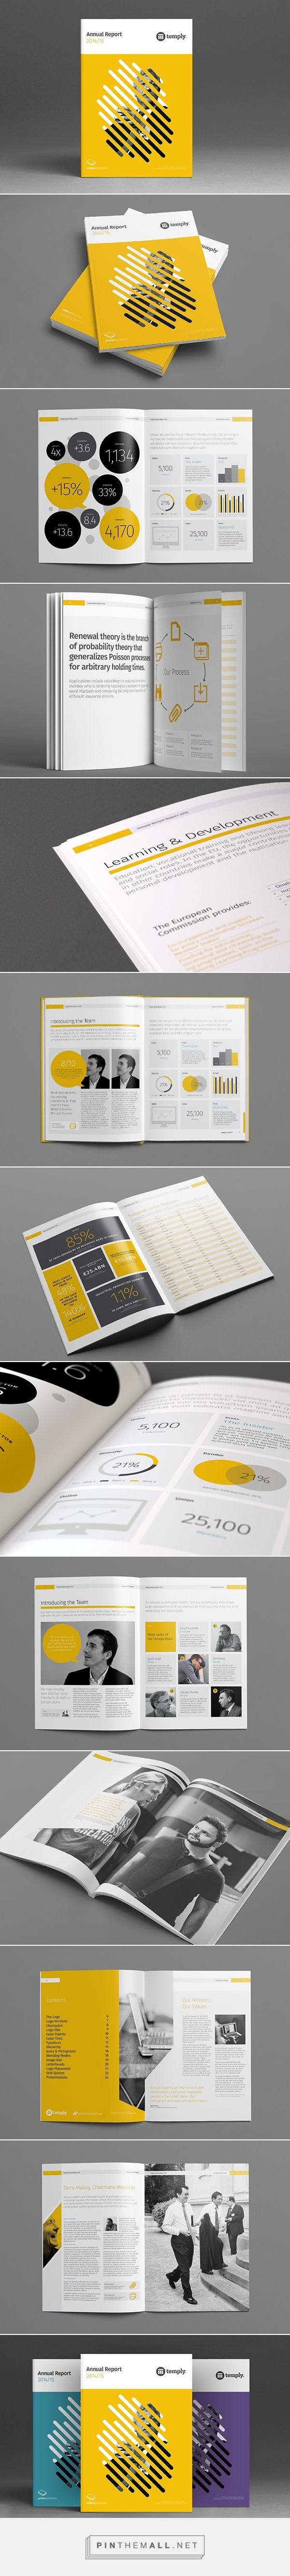 Annual Report Template by Temp ly